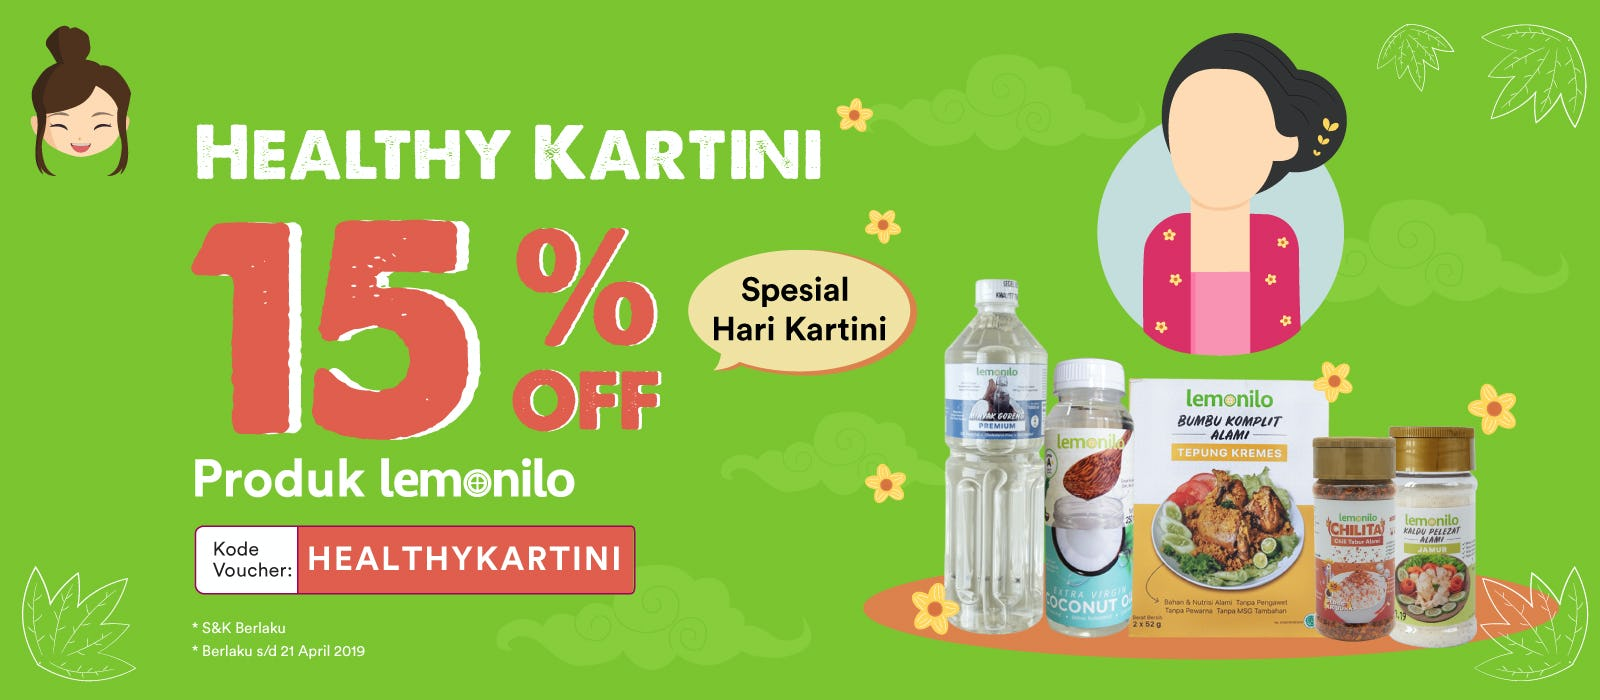 Lemonilo Healthy Kartini 15% OFF